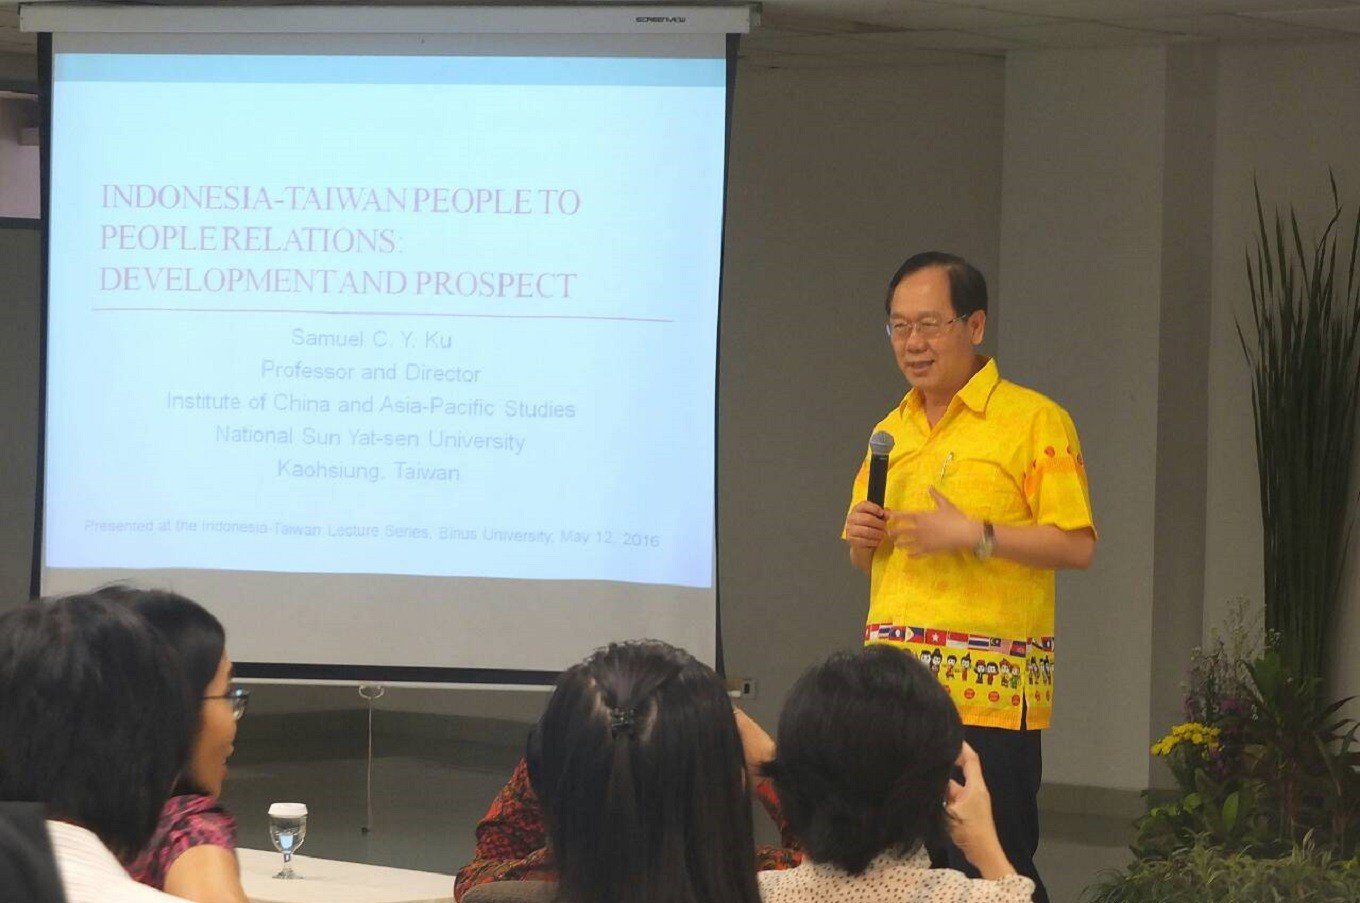 People to People Relations: Development and Prospect